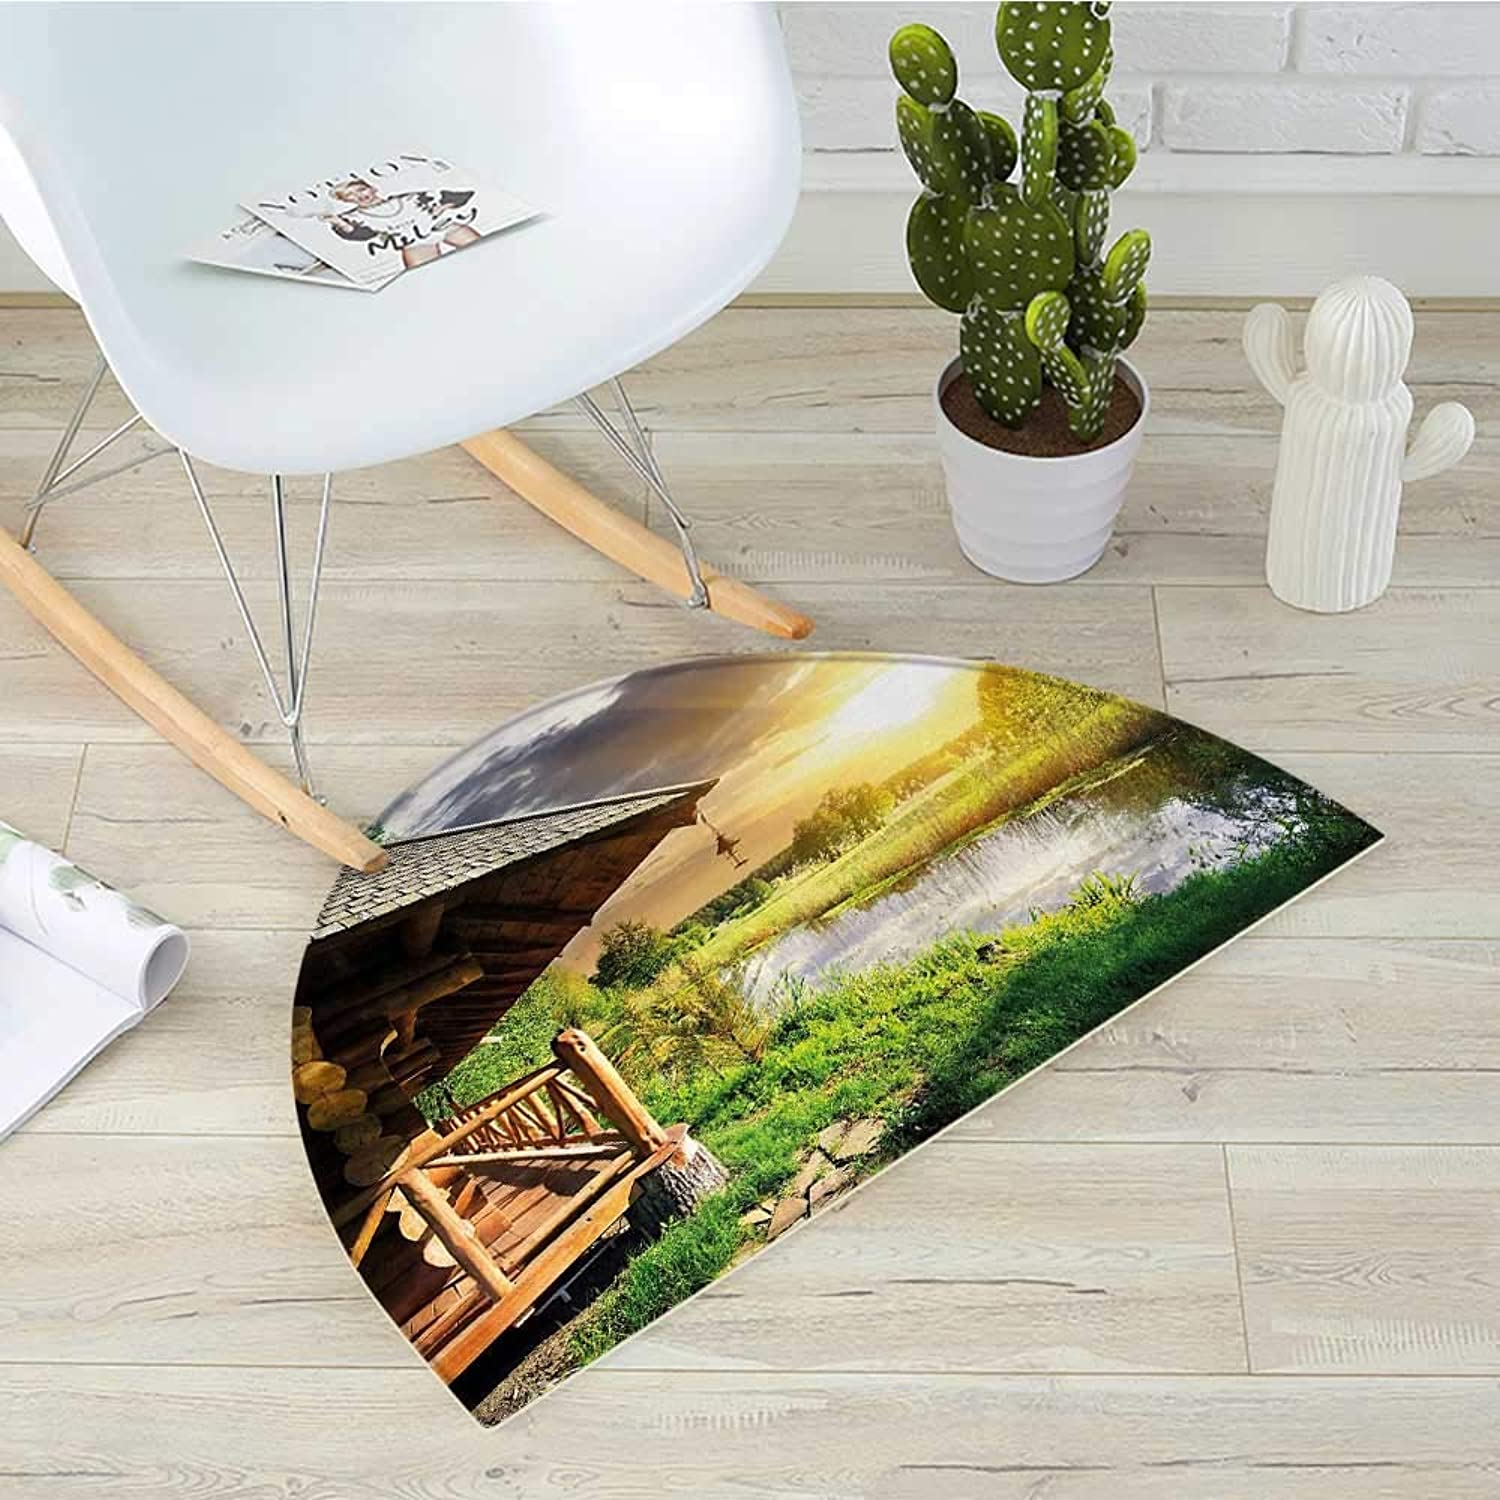 Nature Half Round Door mats Wooden Country House by The Lake with Horizon Background Village Rural Life View Bathroom Mat H 39.3  xD 59  Multicolor